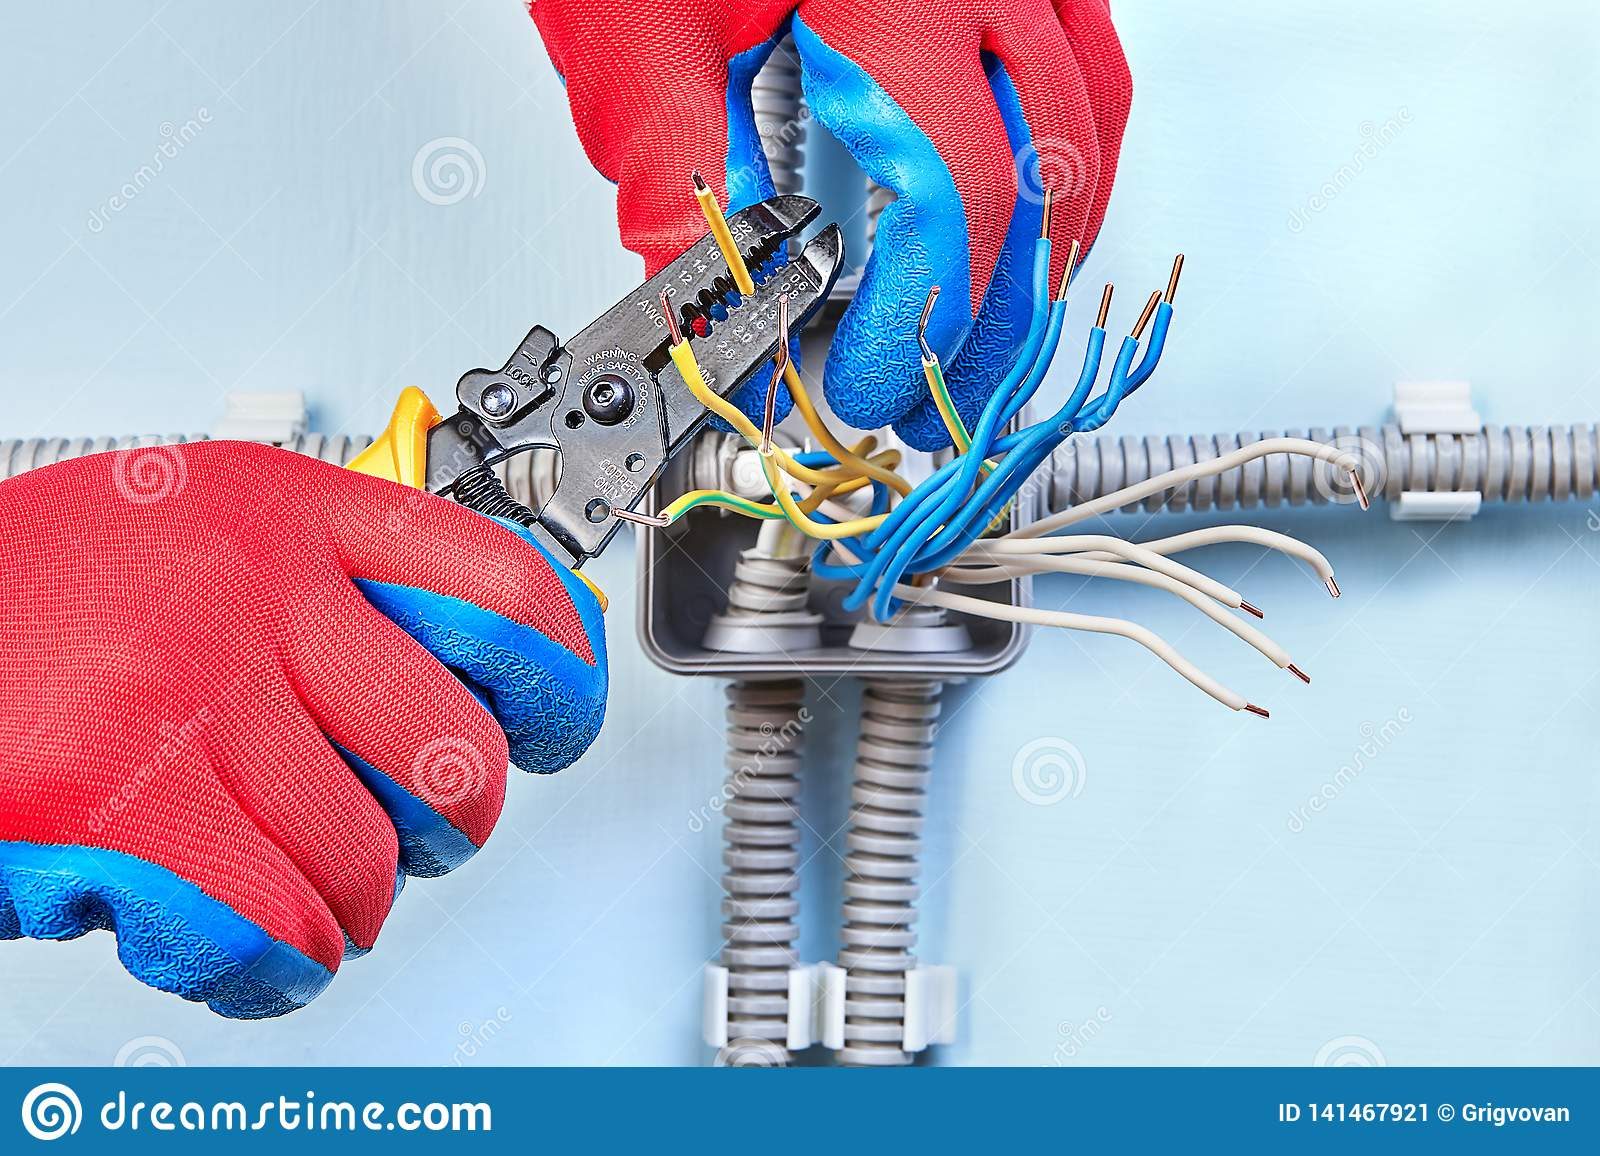 Mounting Of Electrical Wiring Junction Box Stock Image ... on